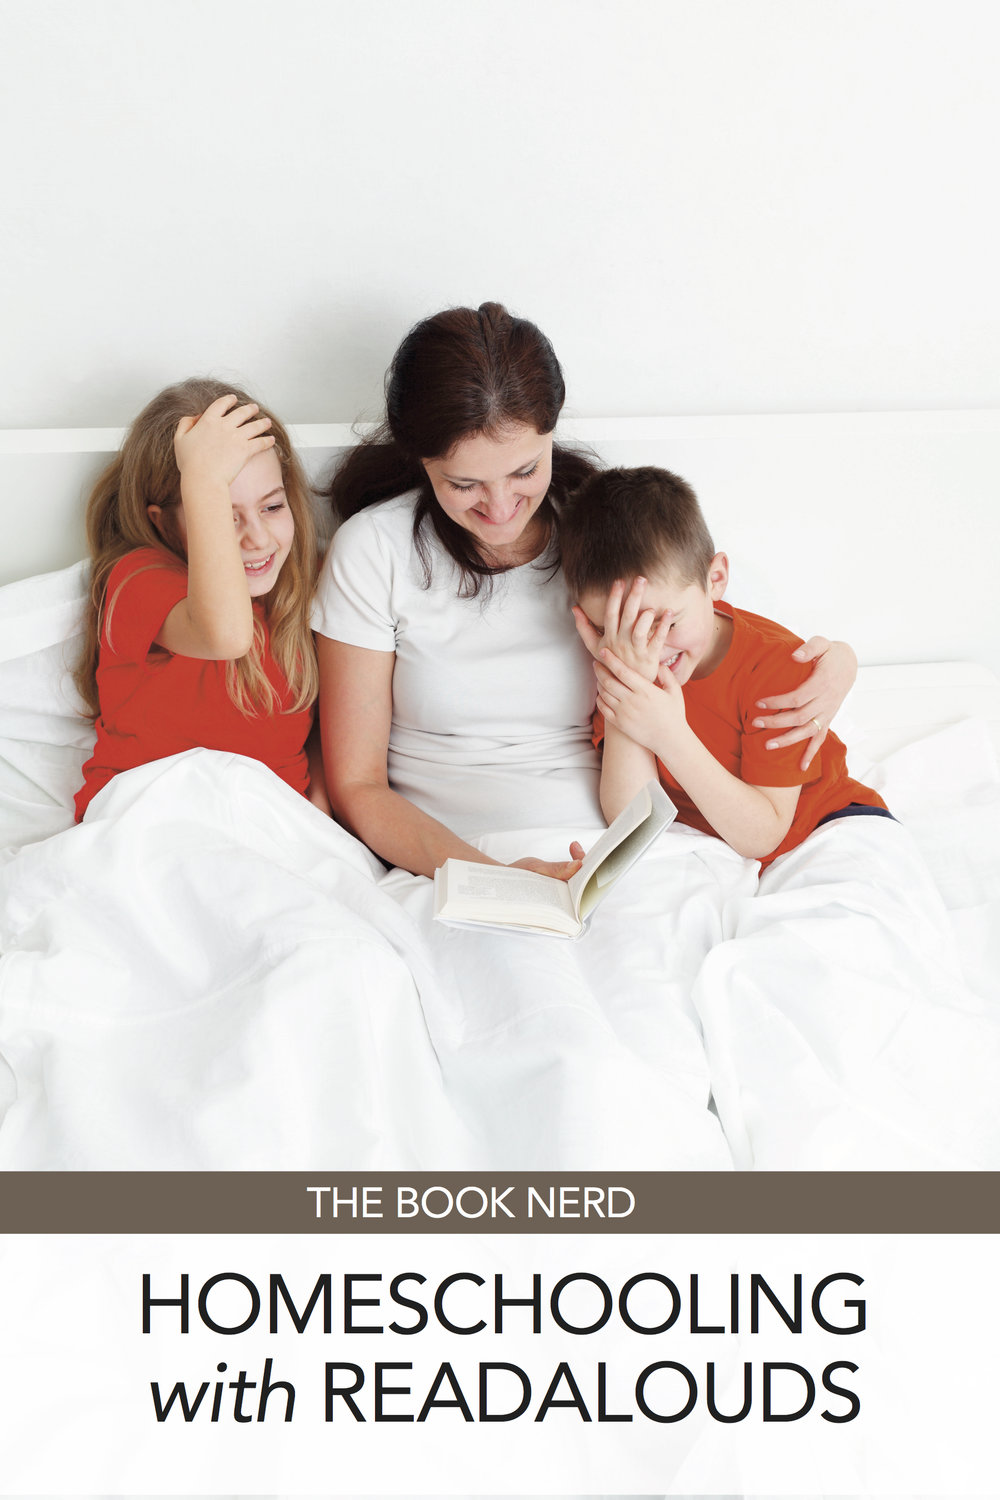 The Book Nerd: Suzanne talks about how she plans her homeschool day around readalouds